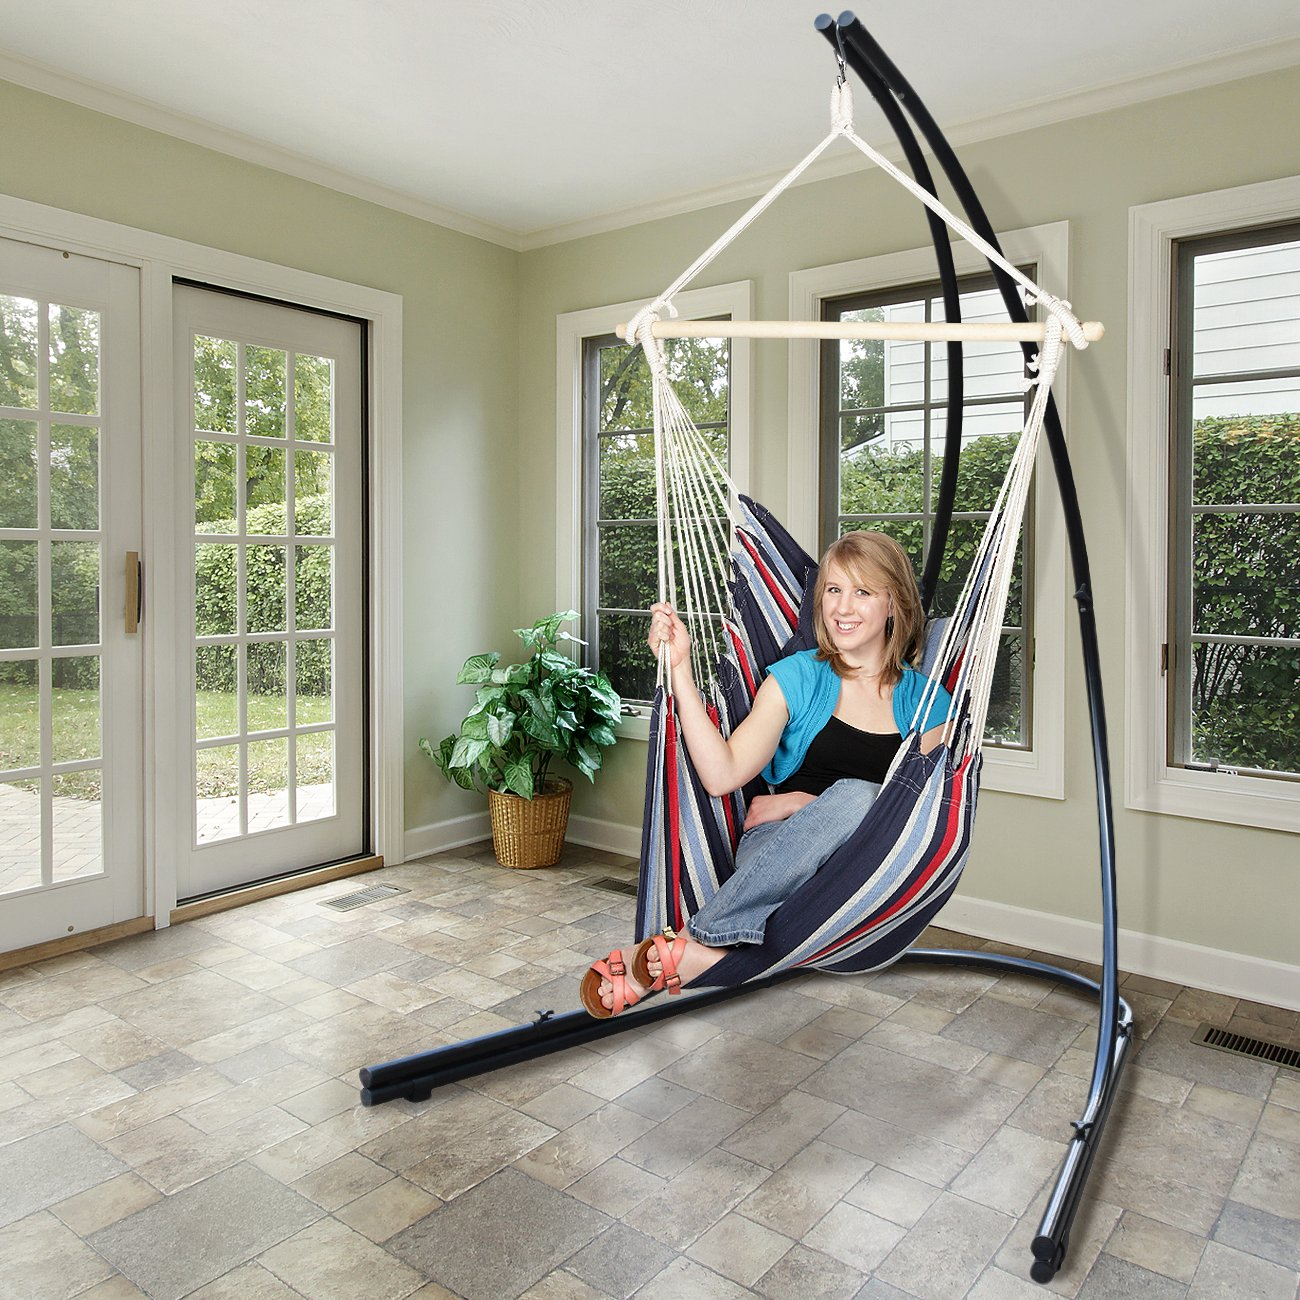 Amazon.com : Sorbus Hammock Chair Stand for Hanging Chairs, Swings ...